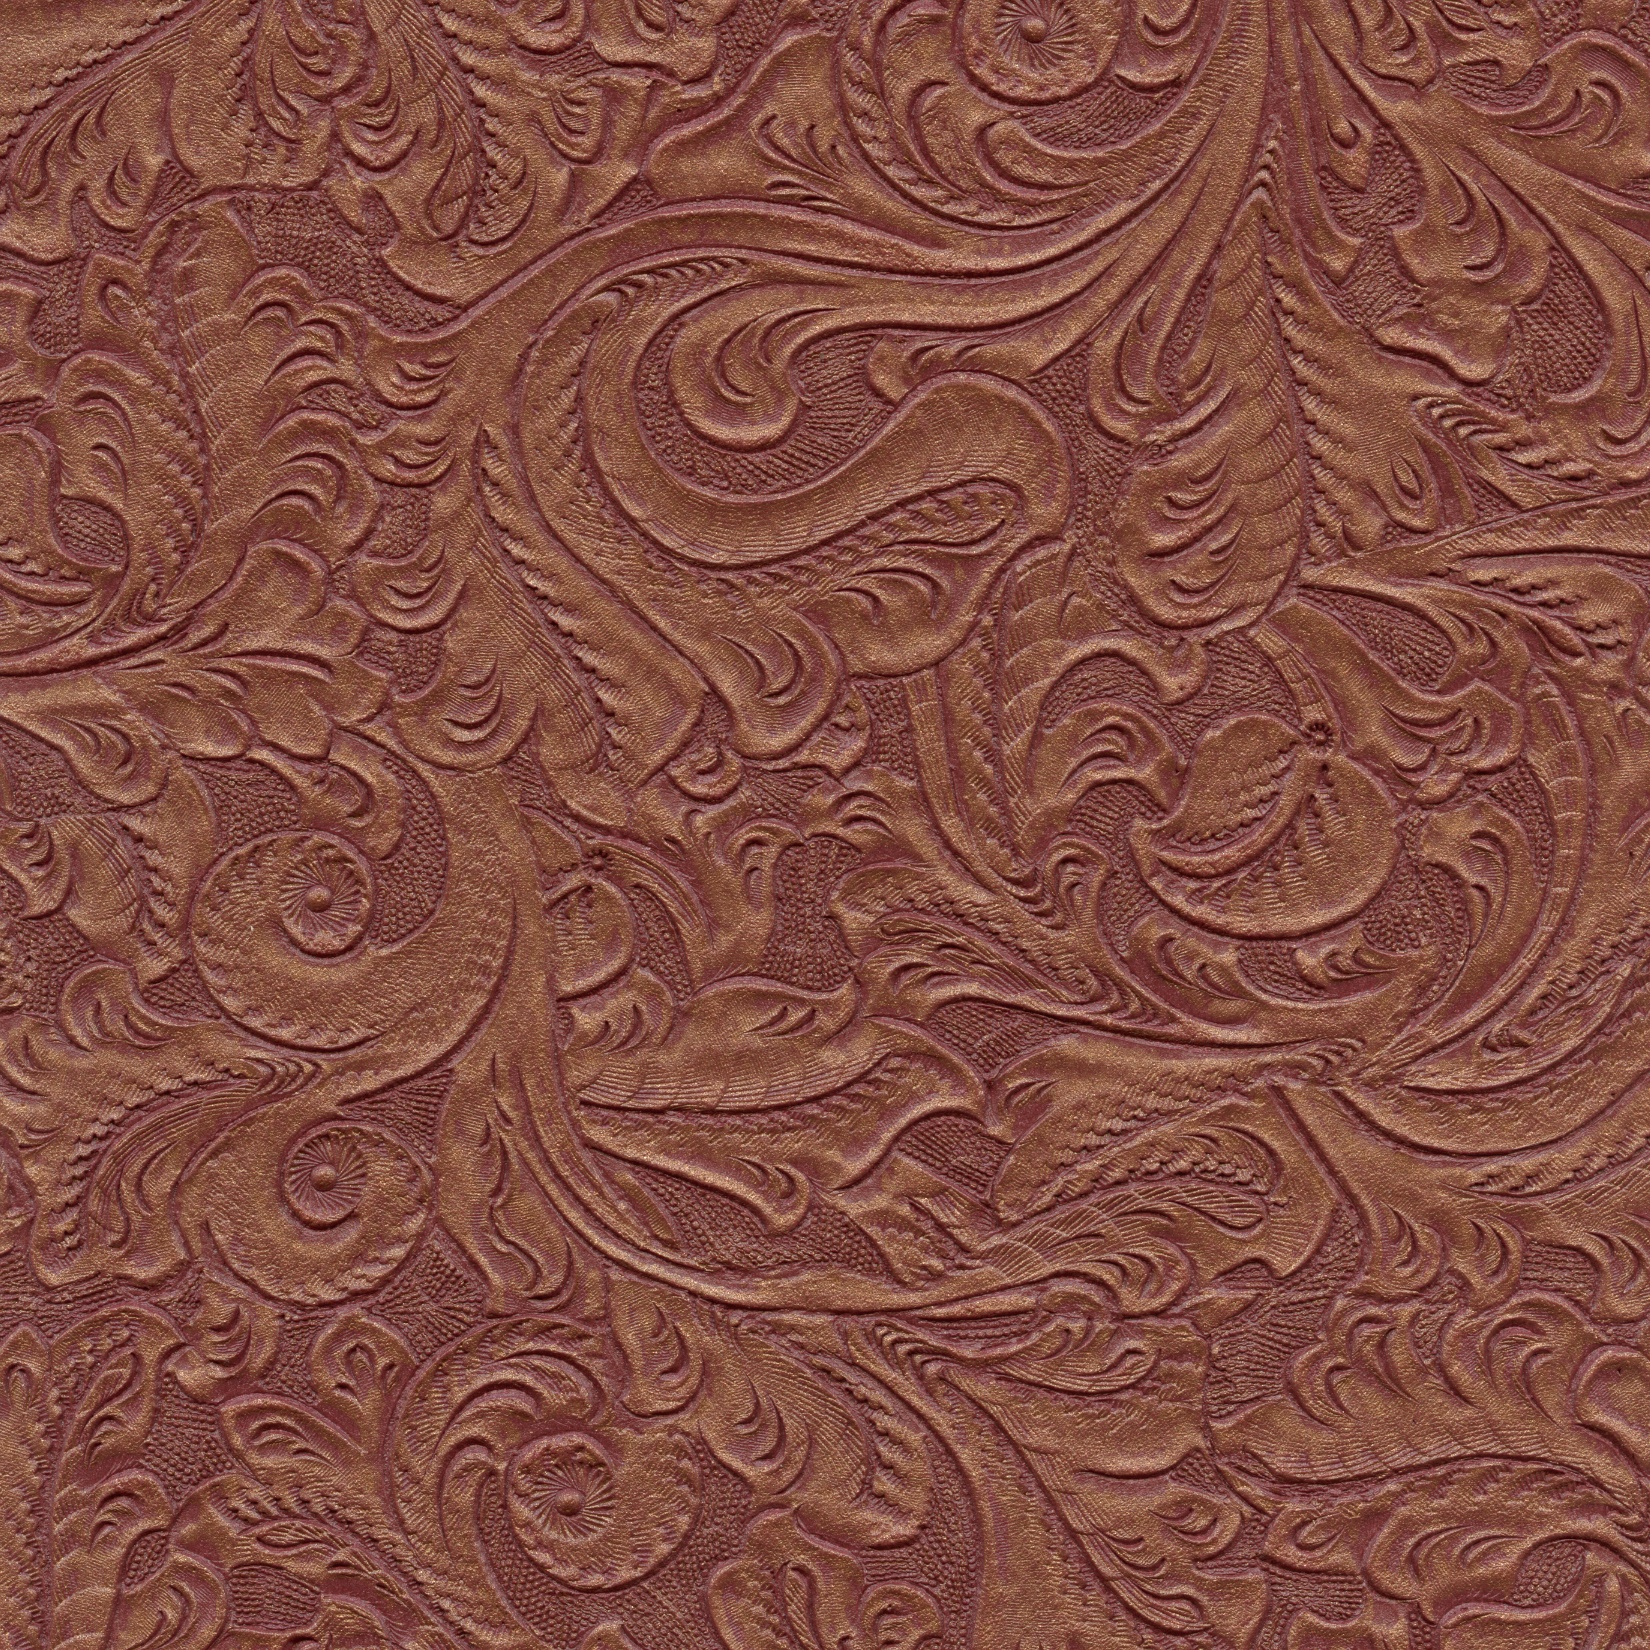 Tooled Leather Patterns Patterns in this style 1650x1650